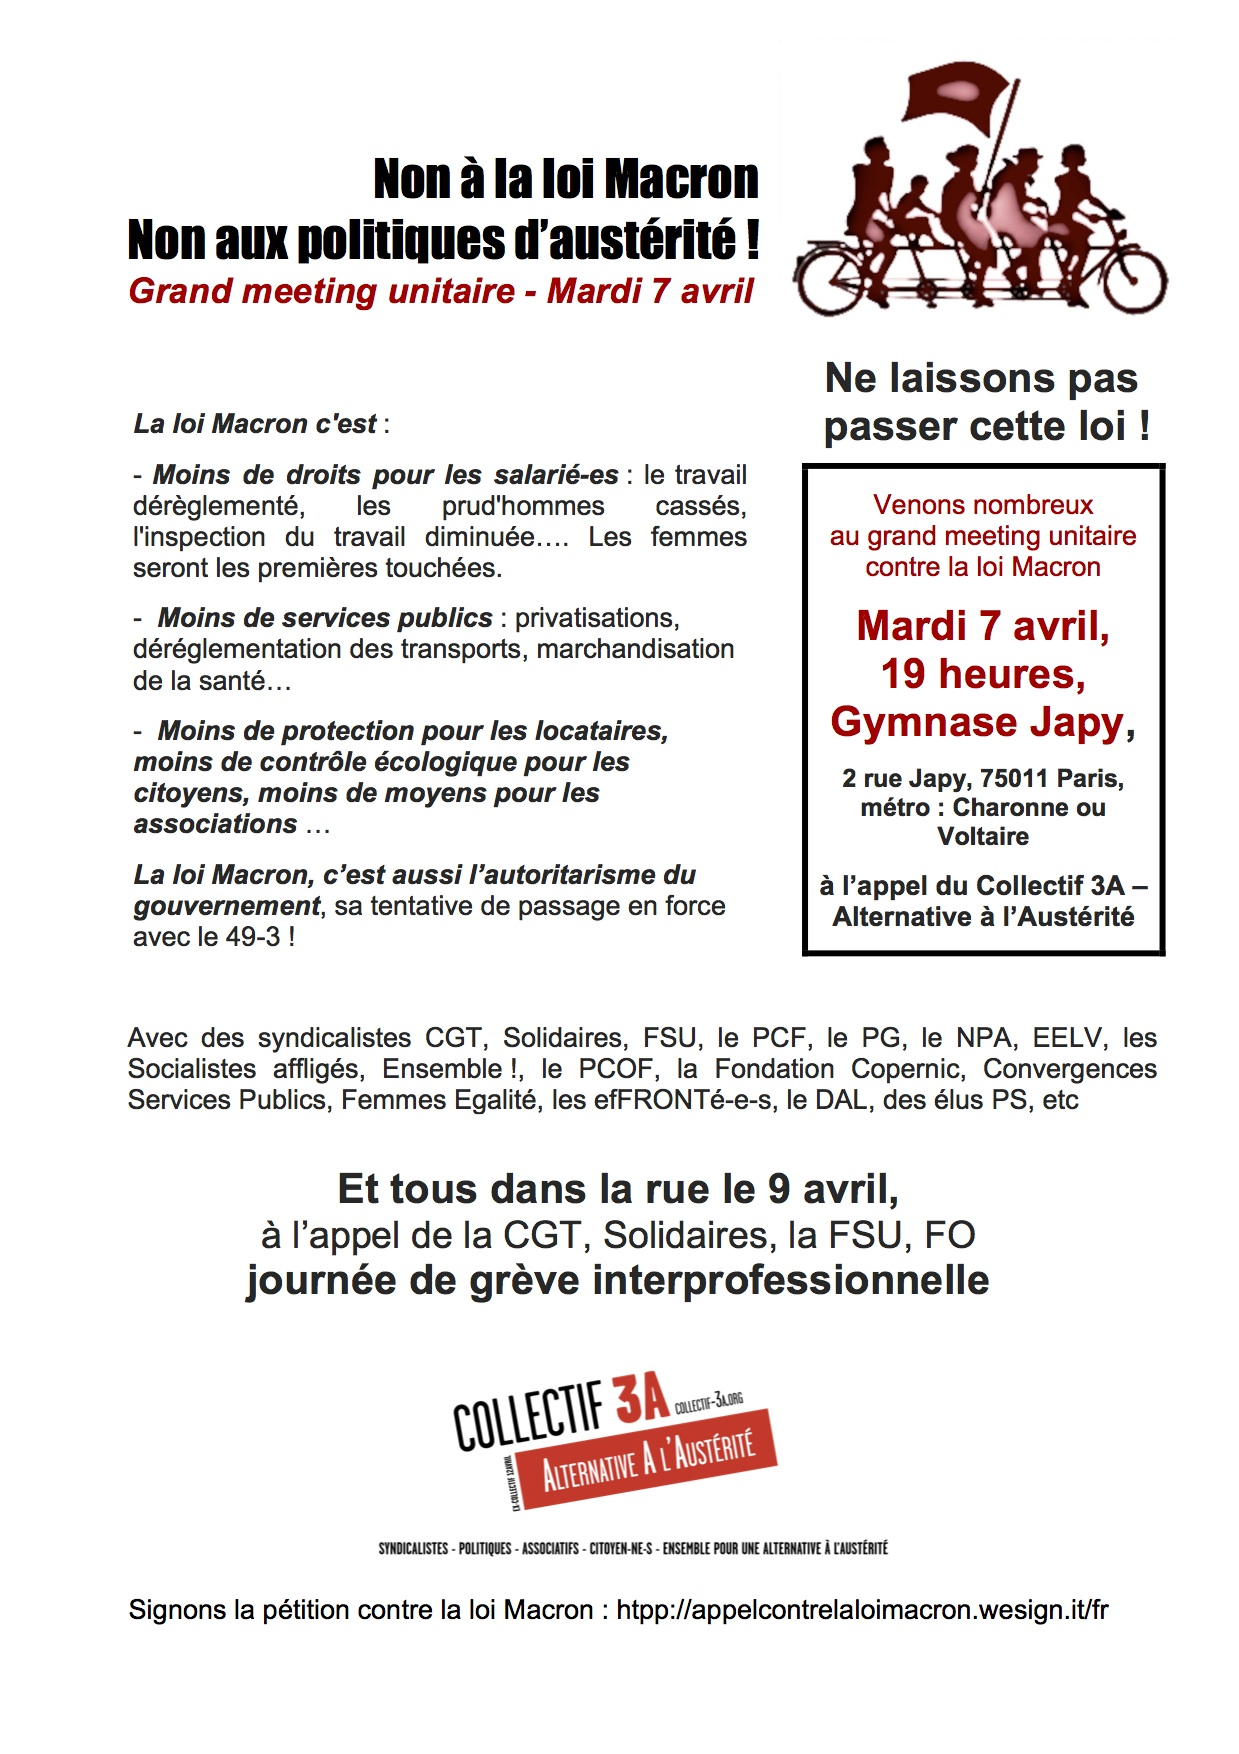 final_meeting Macron-flyer